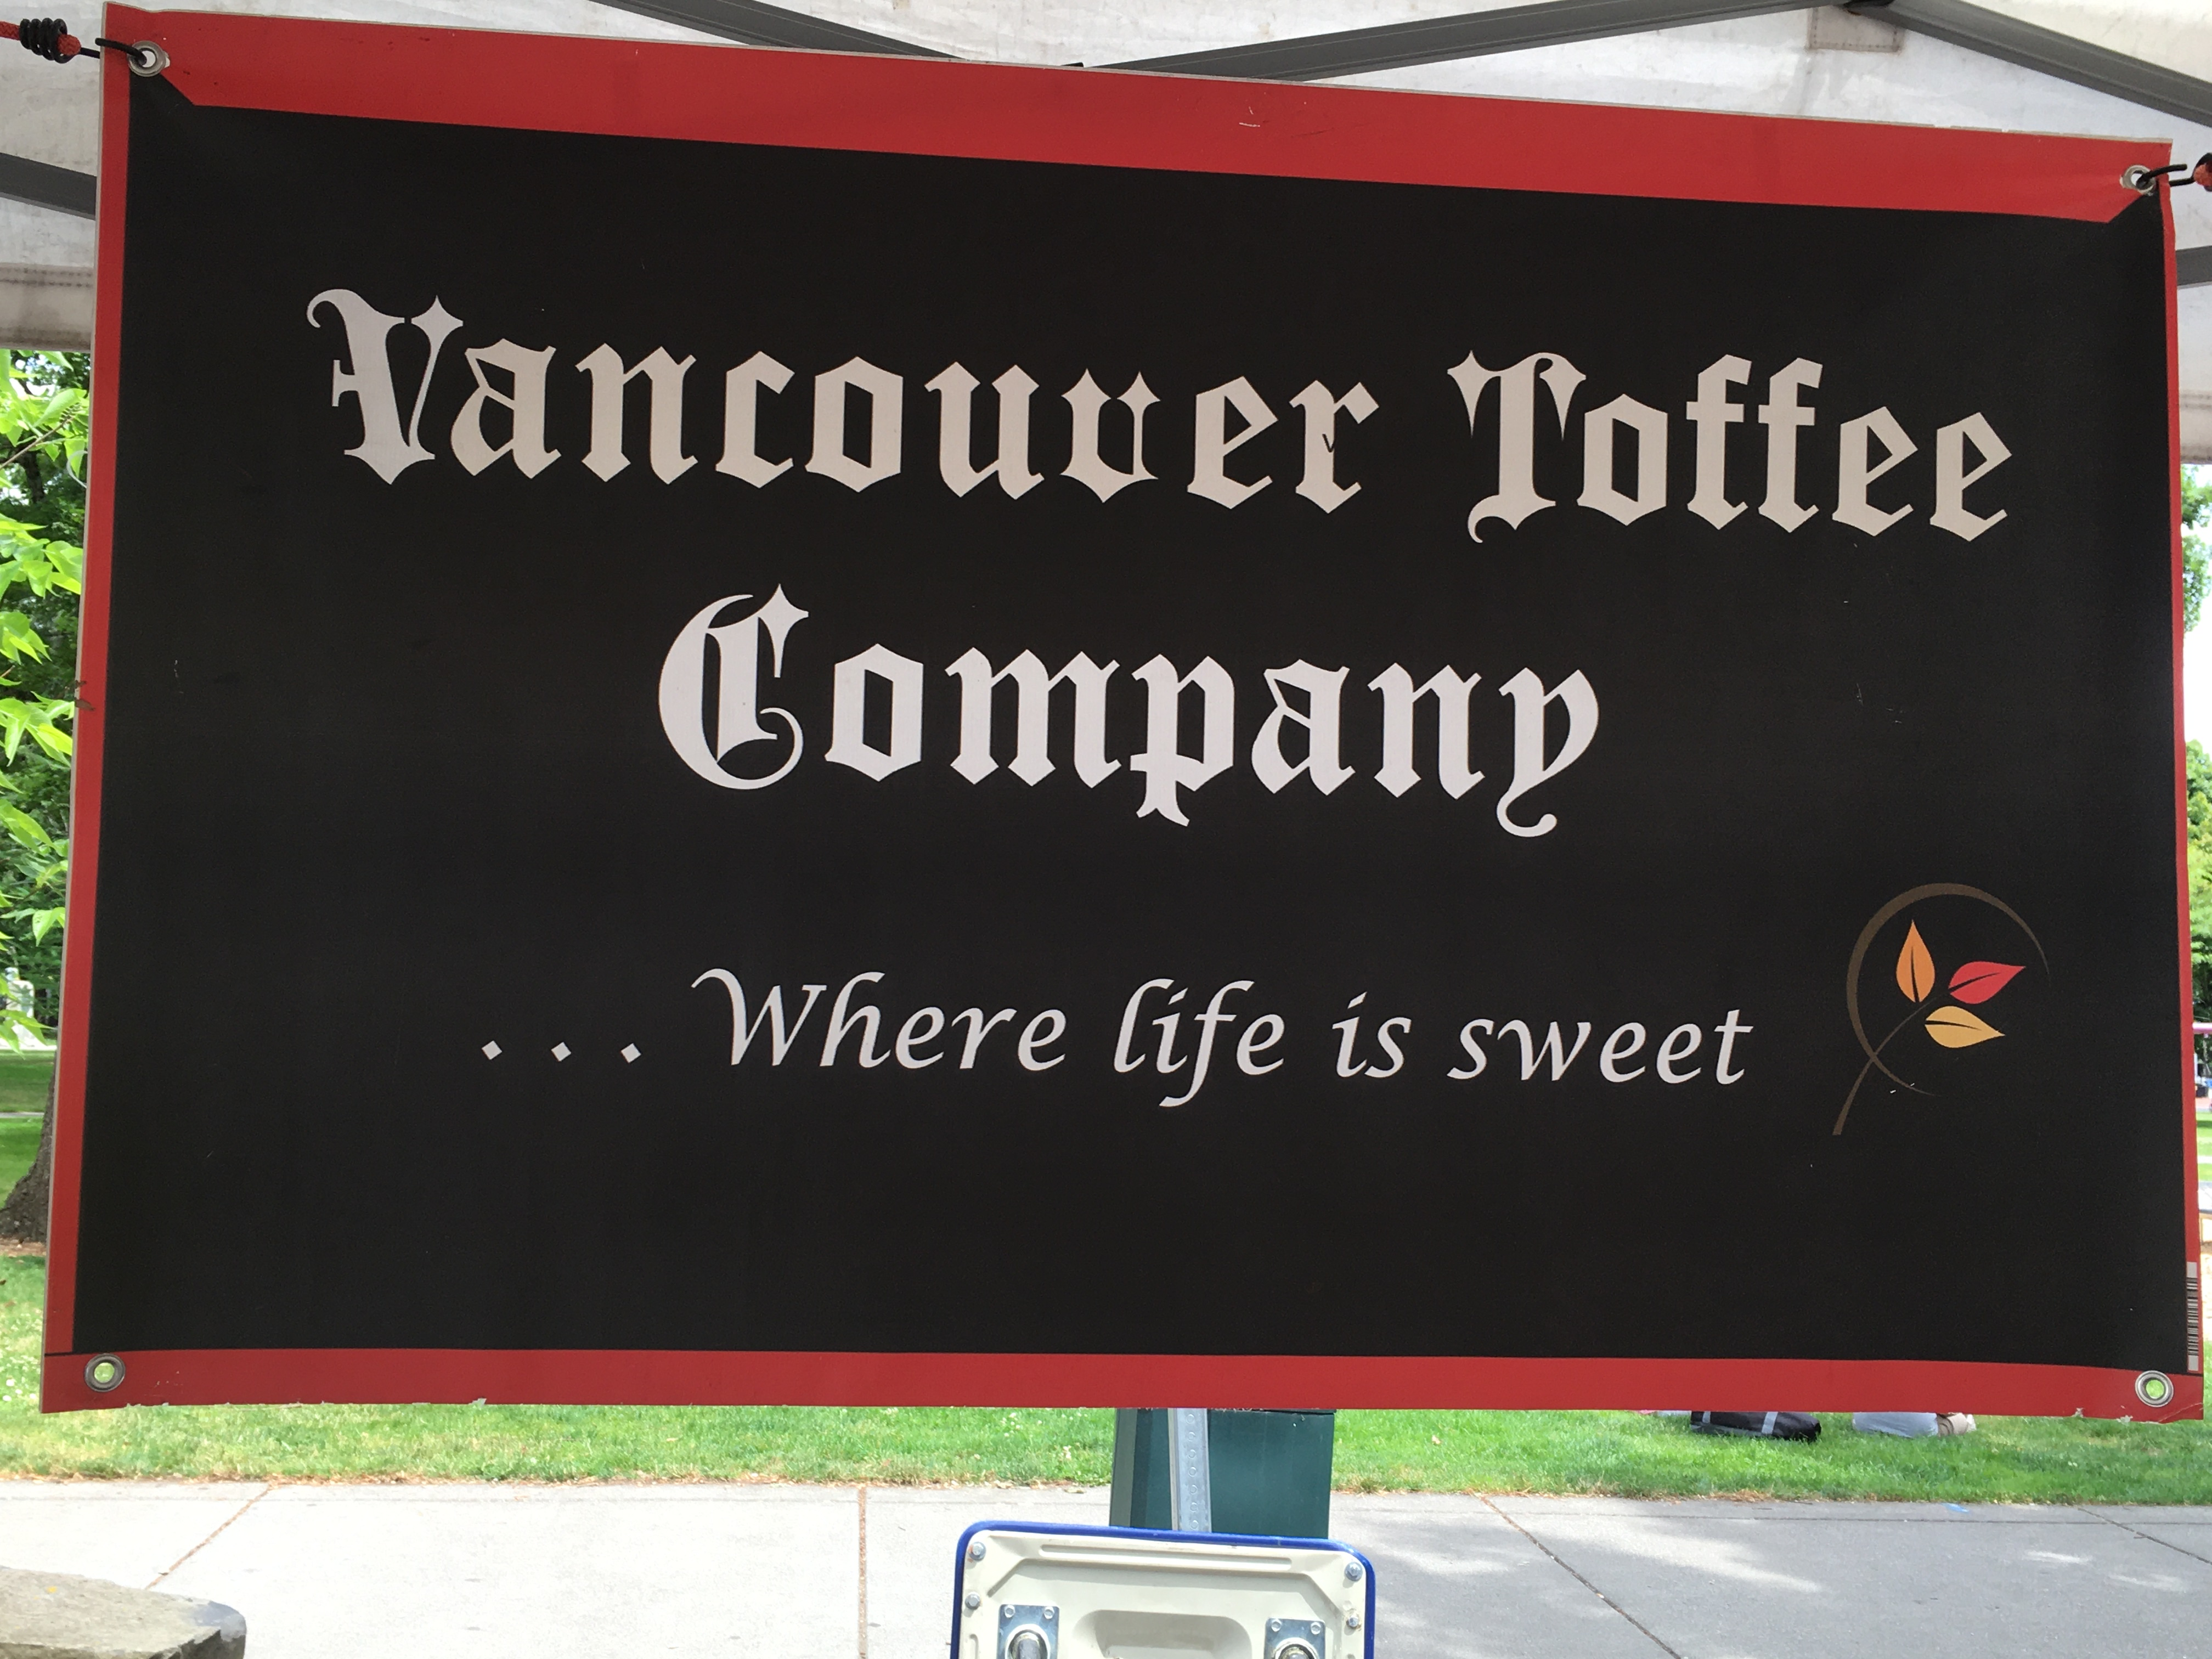 Vancouver Toffee Company